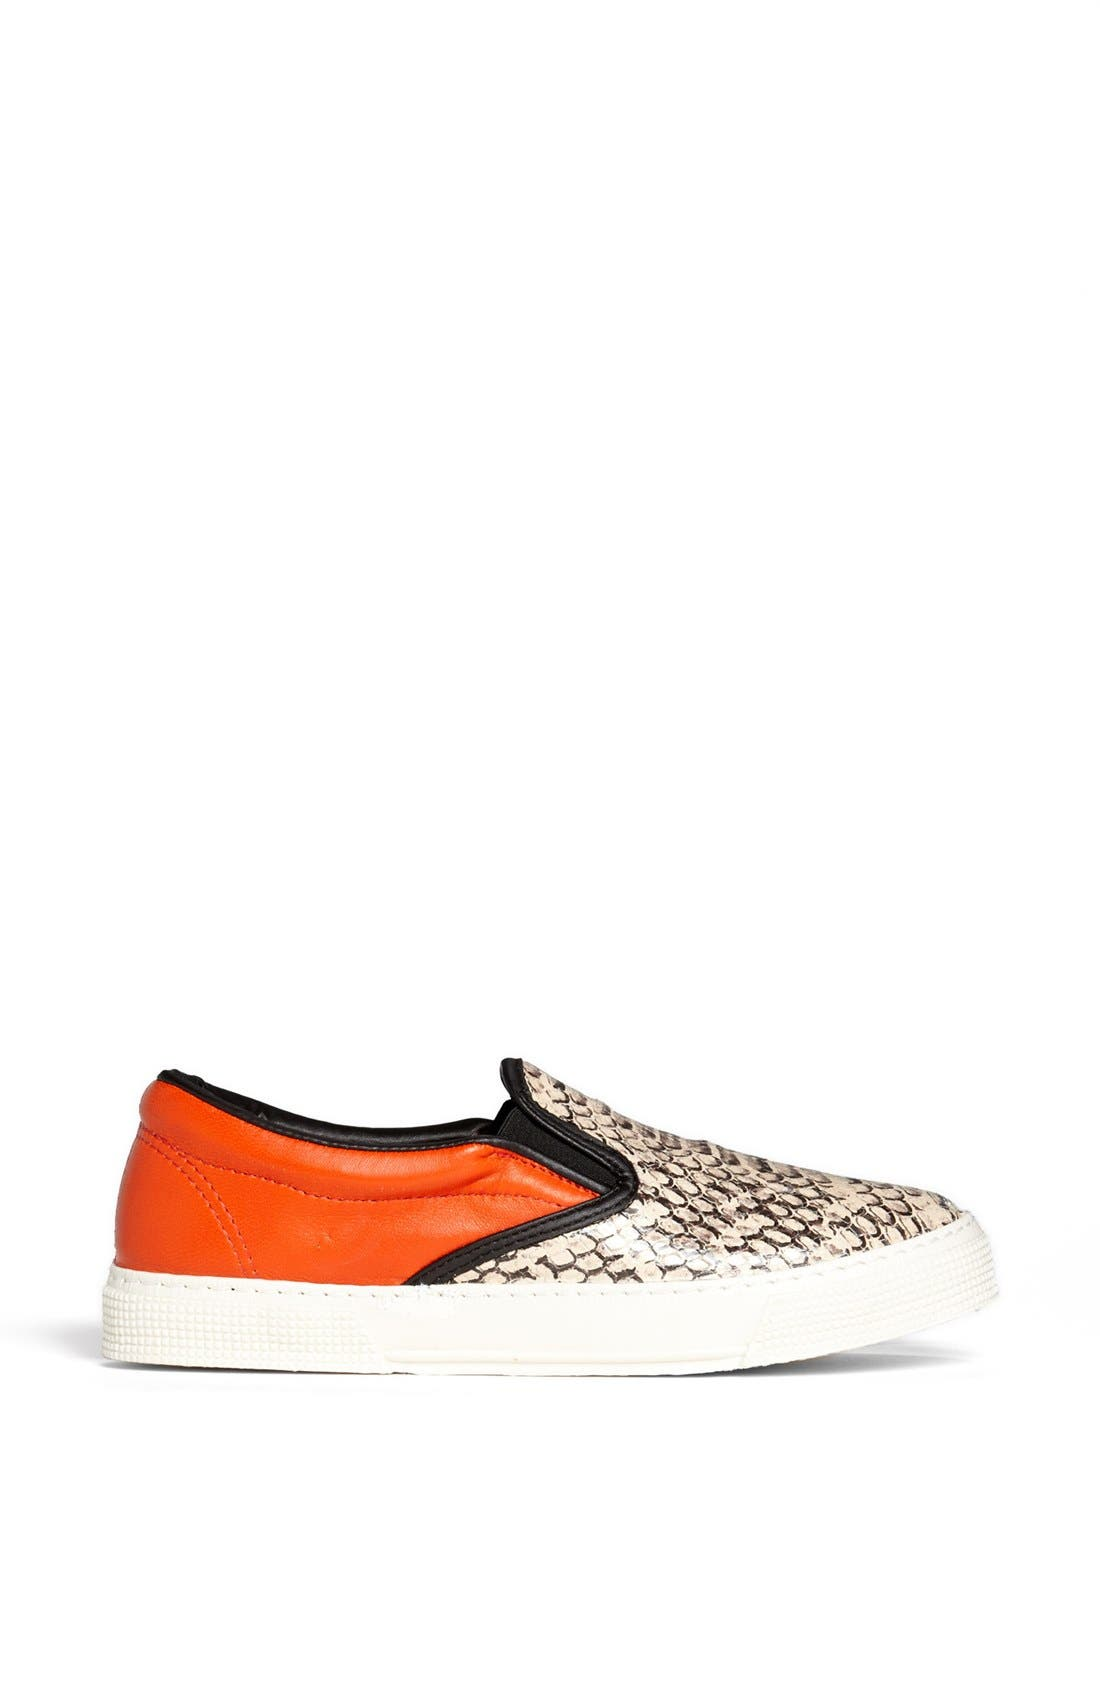 Alternate Image 4  - Kurt Geiger London Slip-On Sneaker